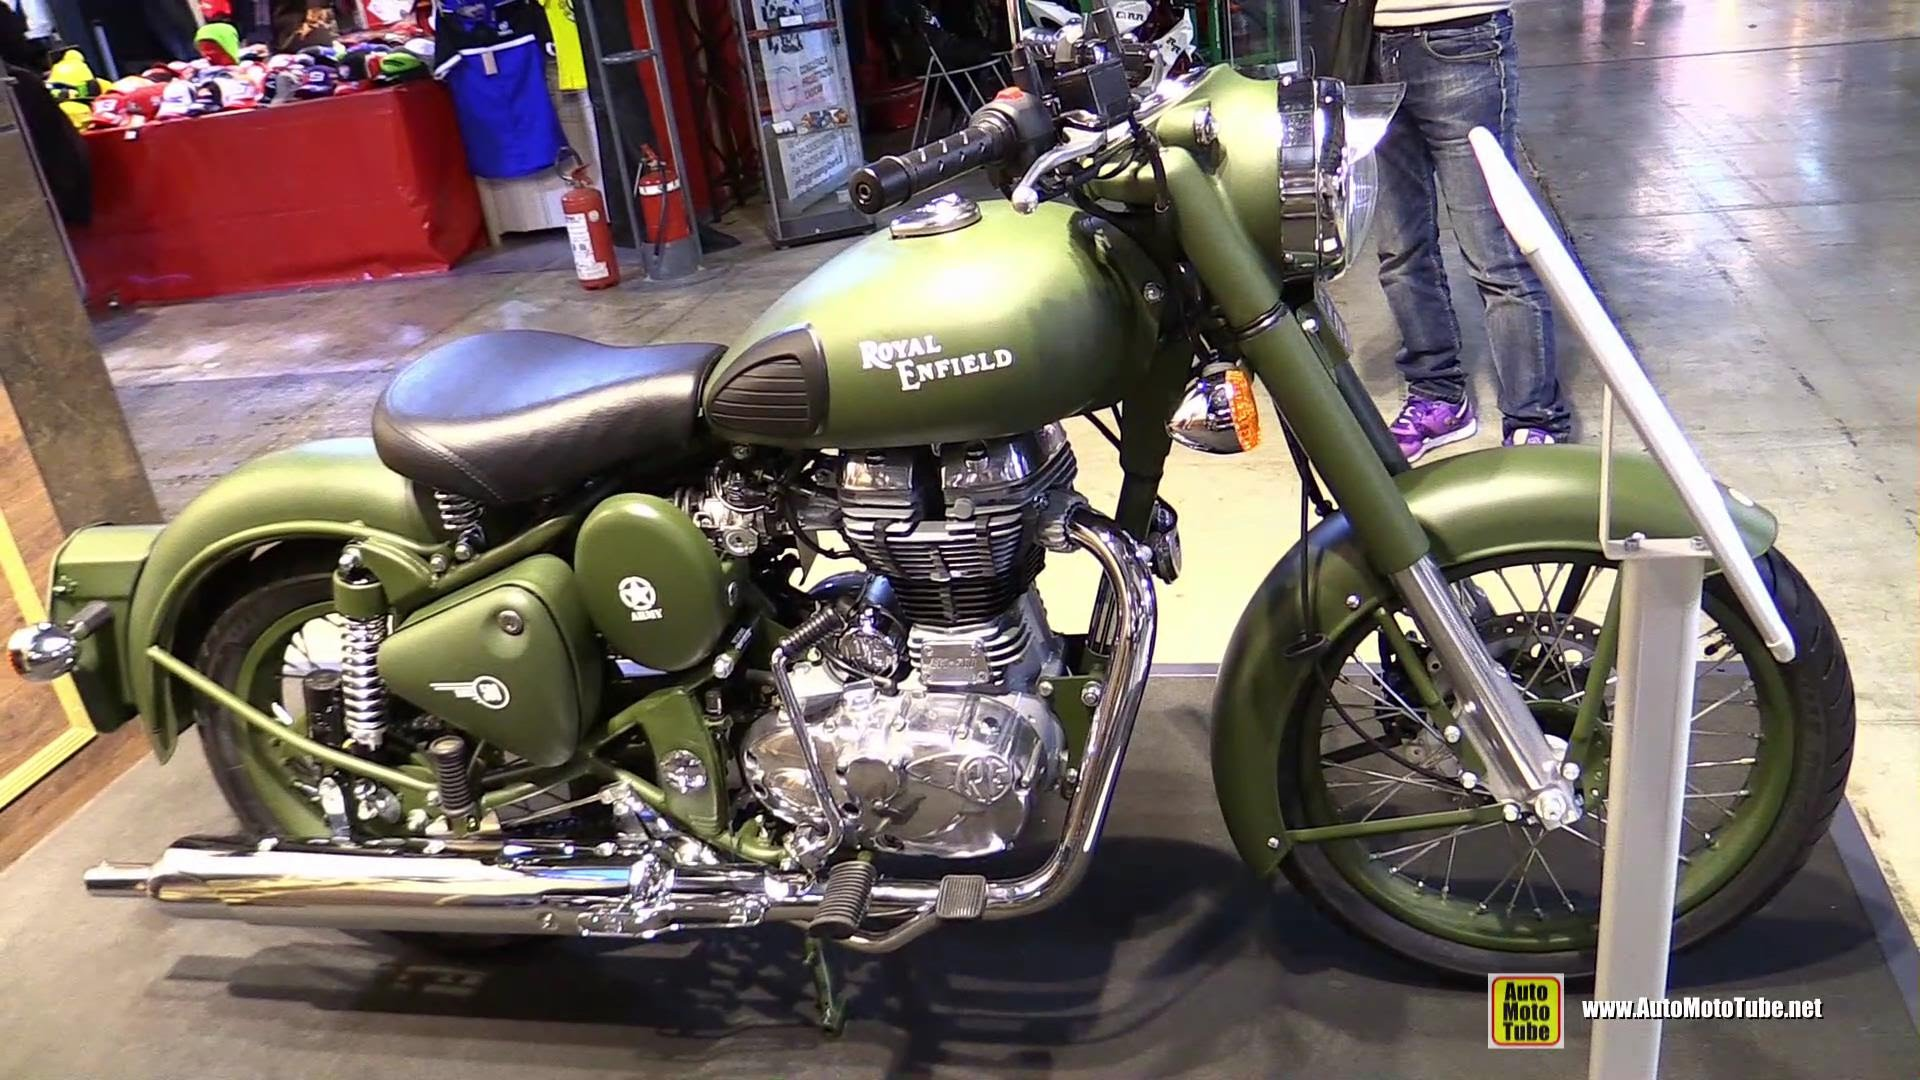 Royal Enfield Bullet 500 Army 1997 images #158637